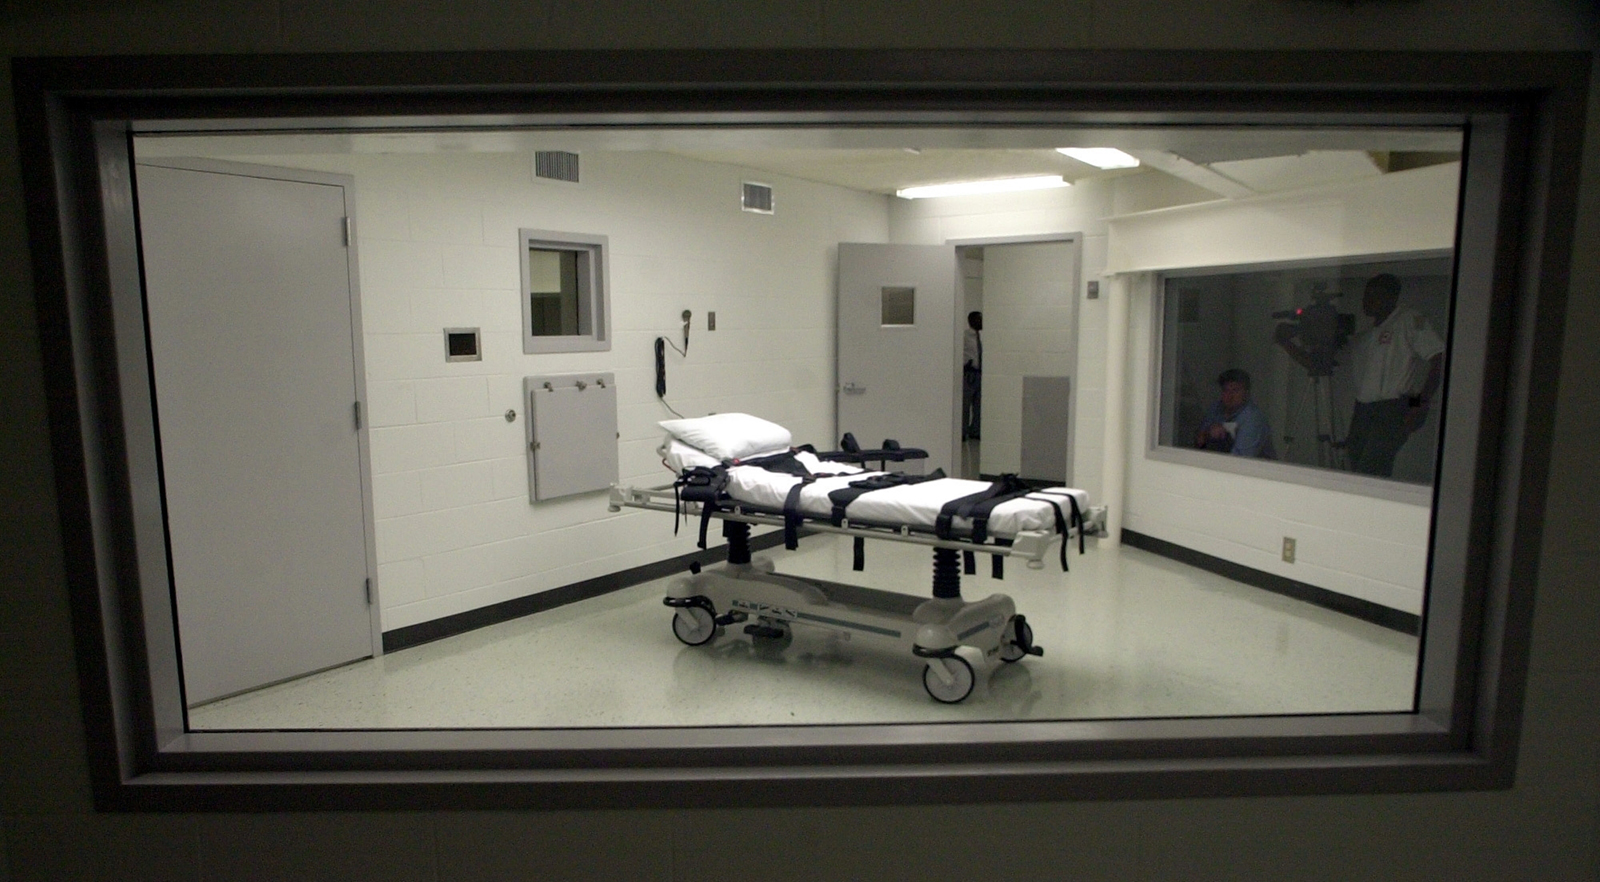 Alabama death row inmate hopes courts will allow chaplain by his side at execution